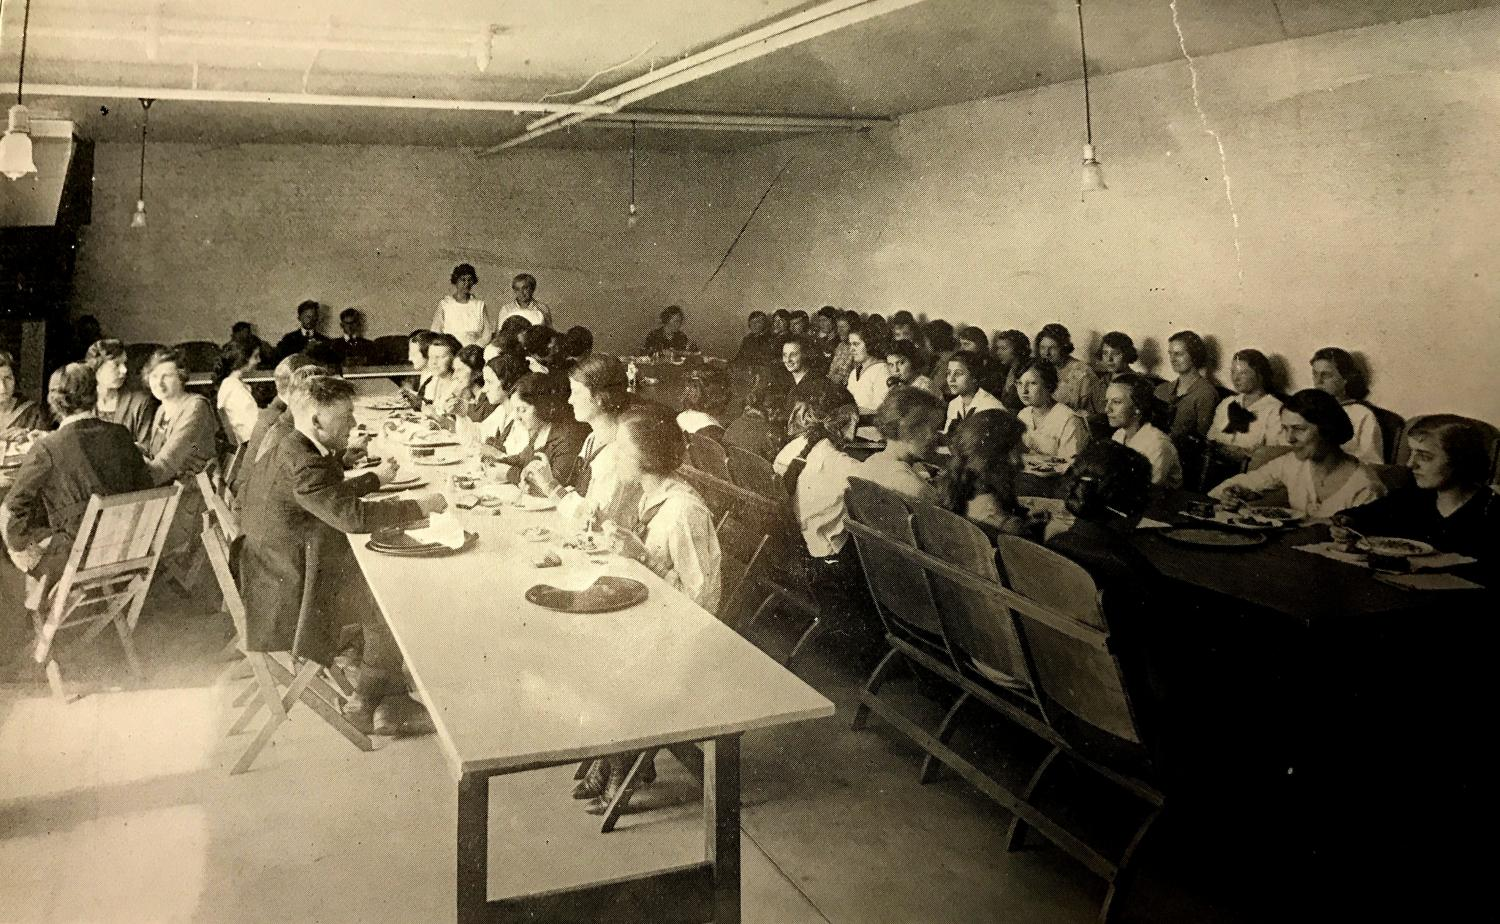 Students enjoy a meal in the basement of the Brainerd building, where the cafeteria was located.